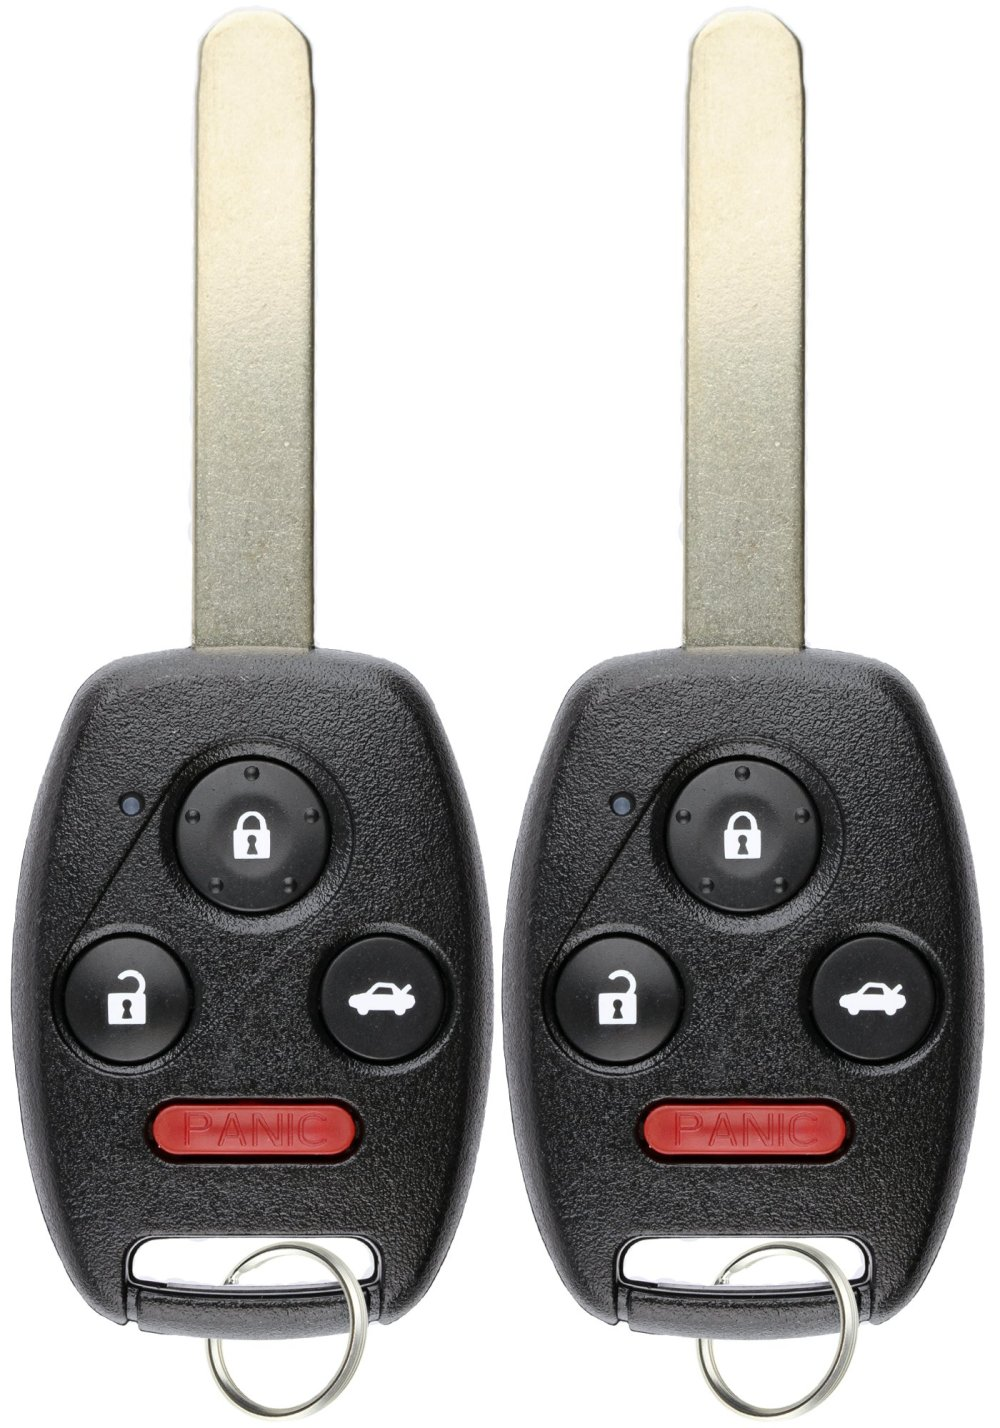 medium resolution of keylessoption keyless entry remote control uncut car ignition key fob replacement for oucg8d 380h a pack of 2